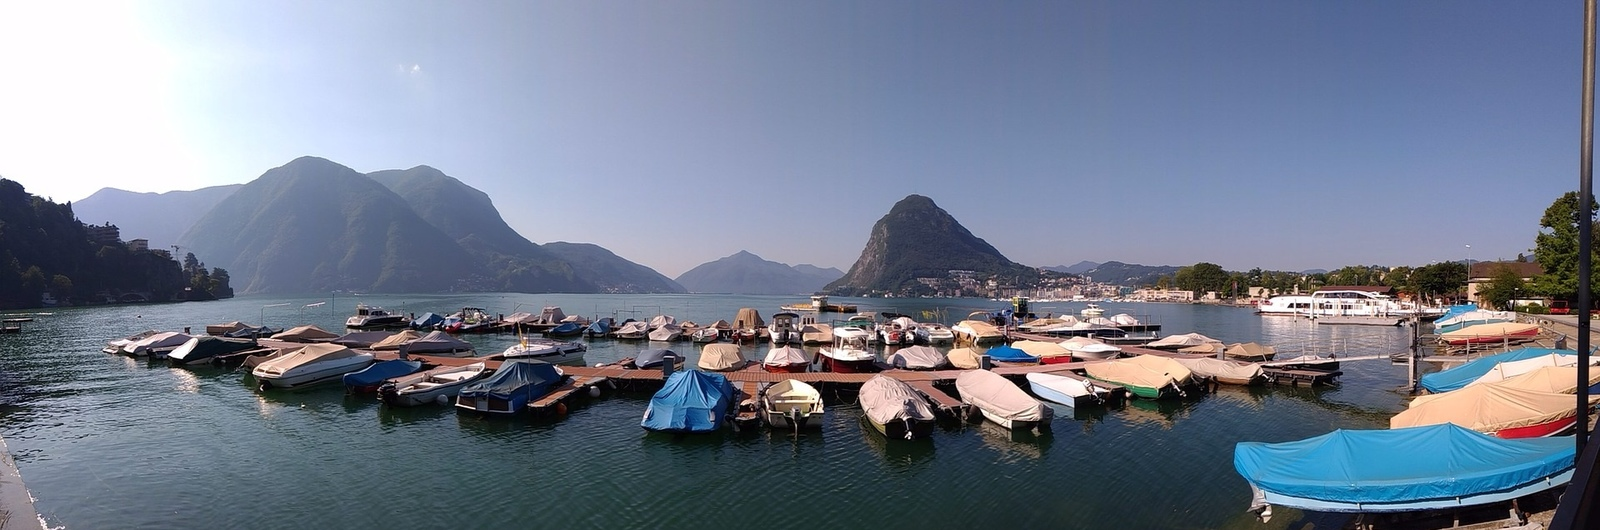 lugano city header